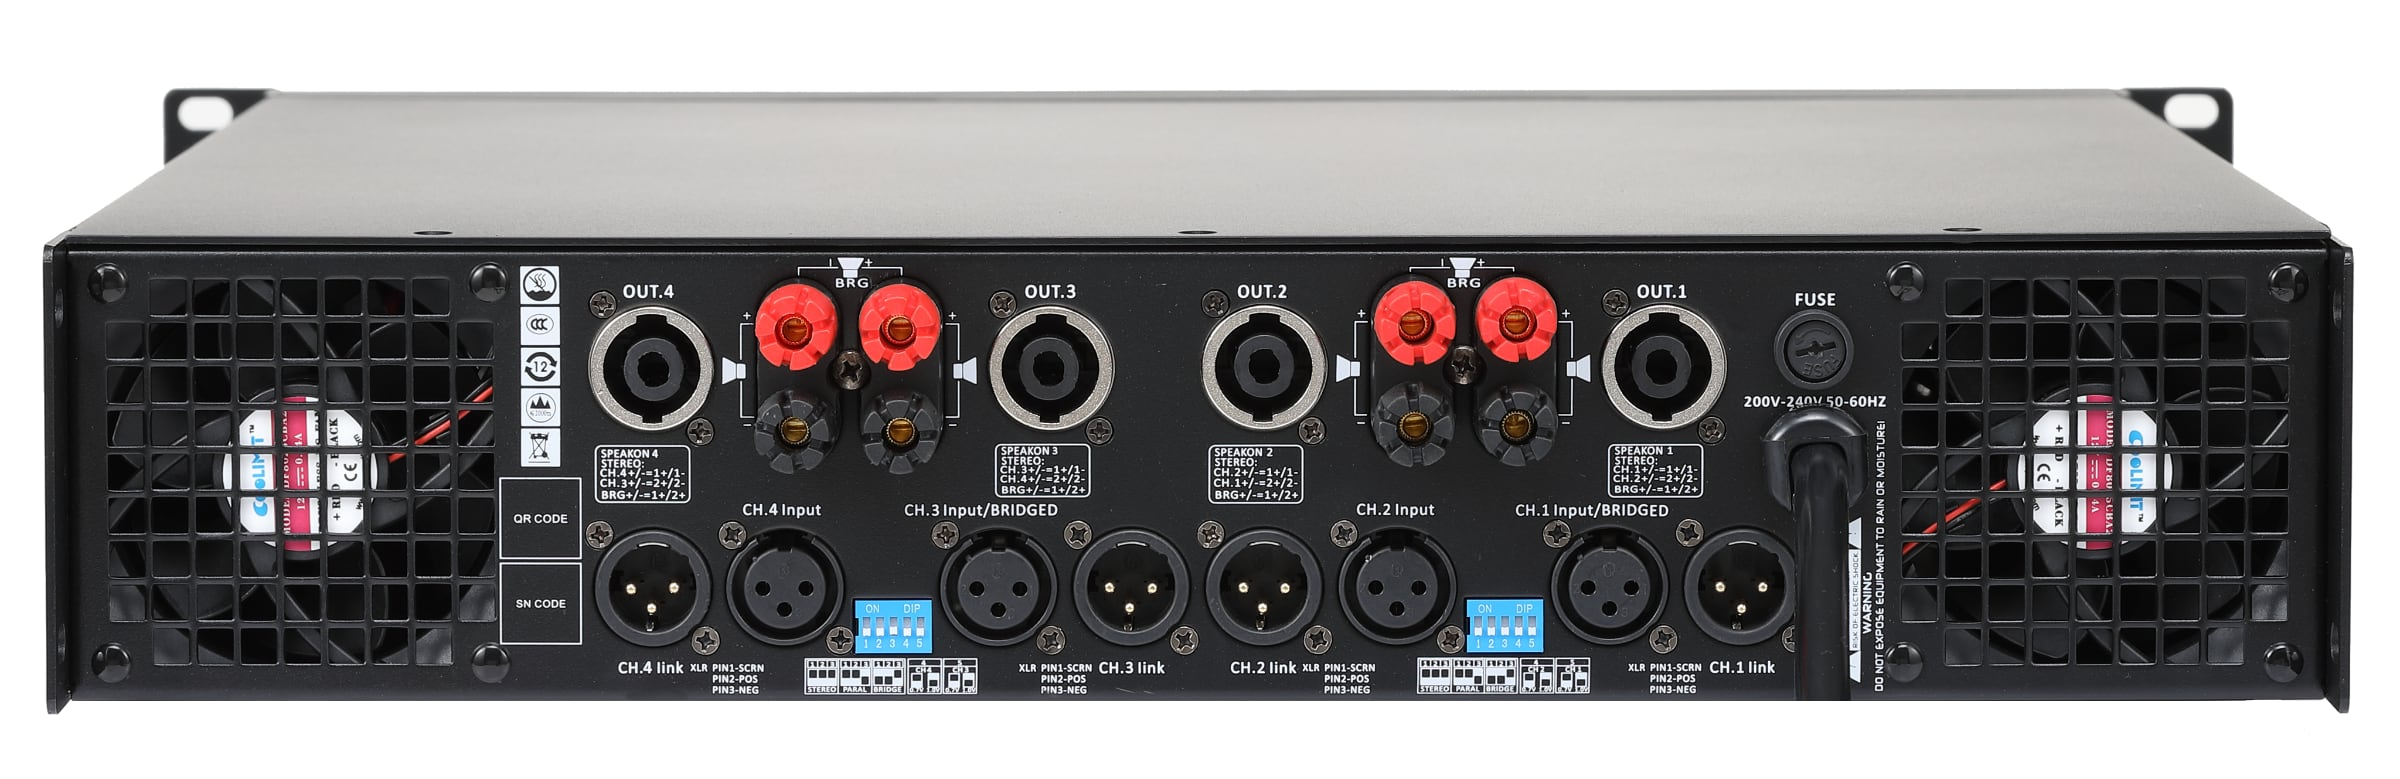 Công suất AAP DX-4004